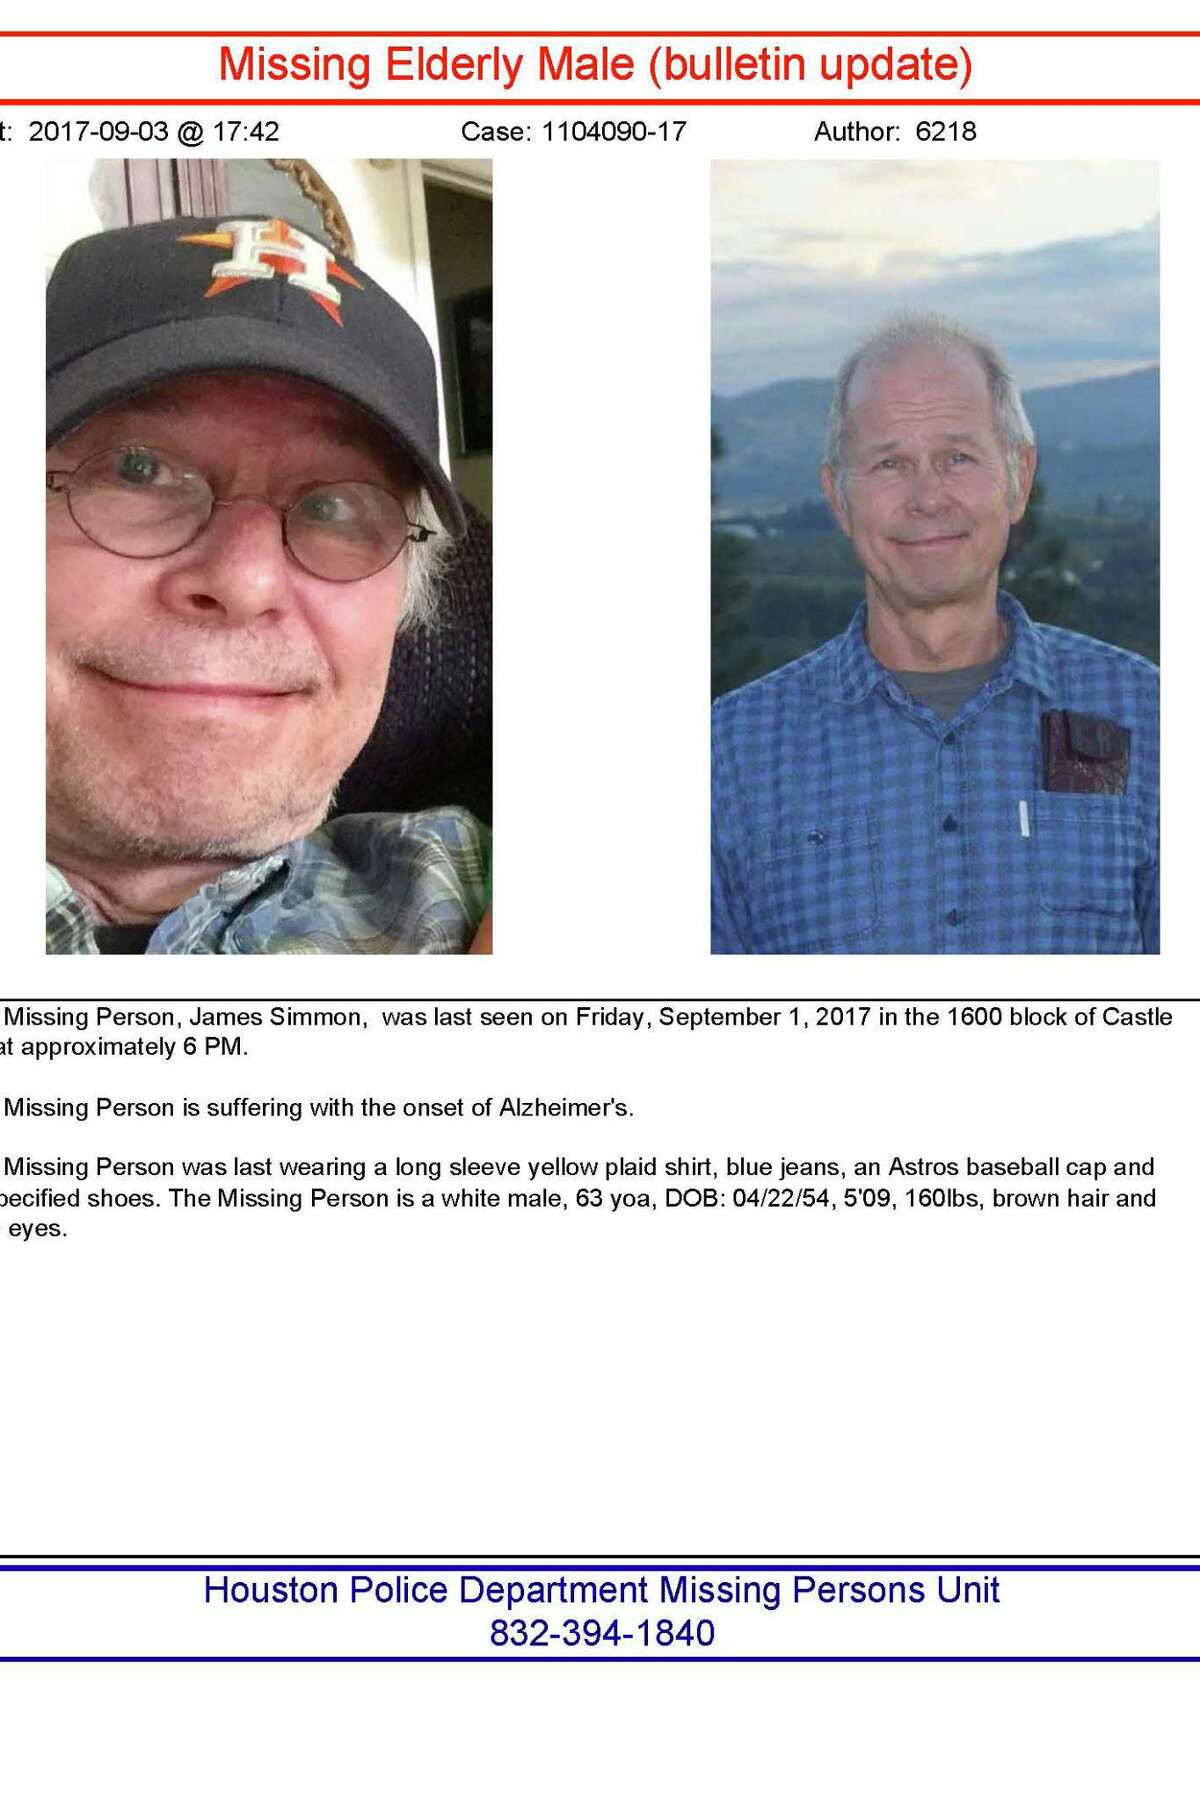 The Missing Person, James Simmon, was last seen on Friday, September 1, 2017 in the 1600 block of Castle Ct. at approximately 6 PM. The Missing Person is suffering with the onset of Alzheimer's. The Missing Person was last wearing a long sleeve yellow plaid shirt, blue jeans, an Astros baseball cap and unspecified shoes. The Missing Person is a white male, 63 yoa, DOB: 04/22/54, 5'09, 160lbs, brown hair and blue eyes.